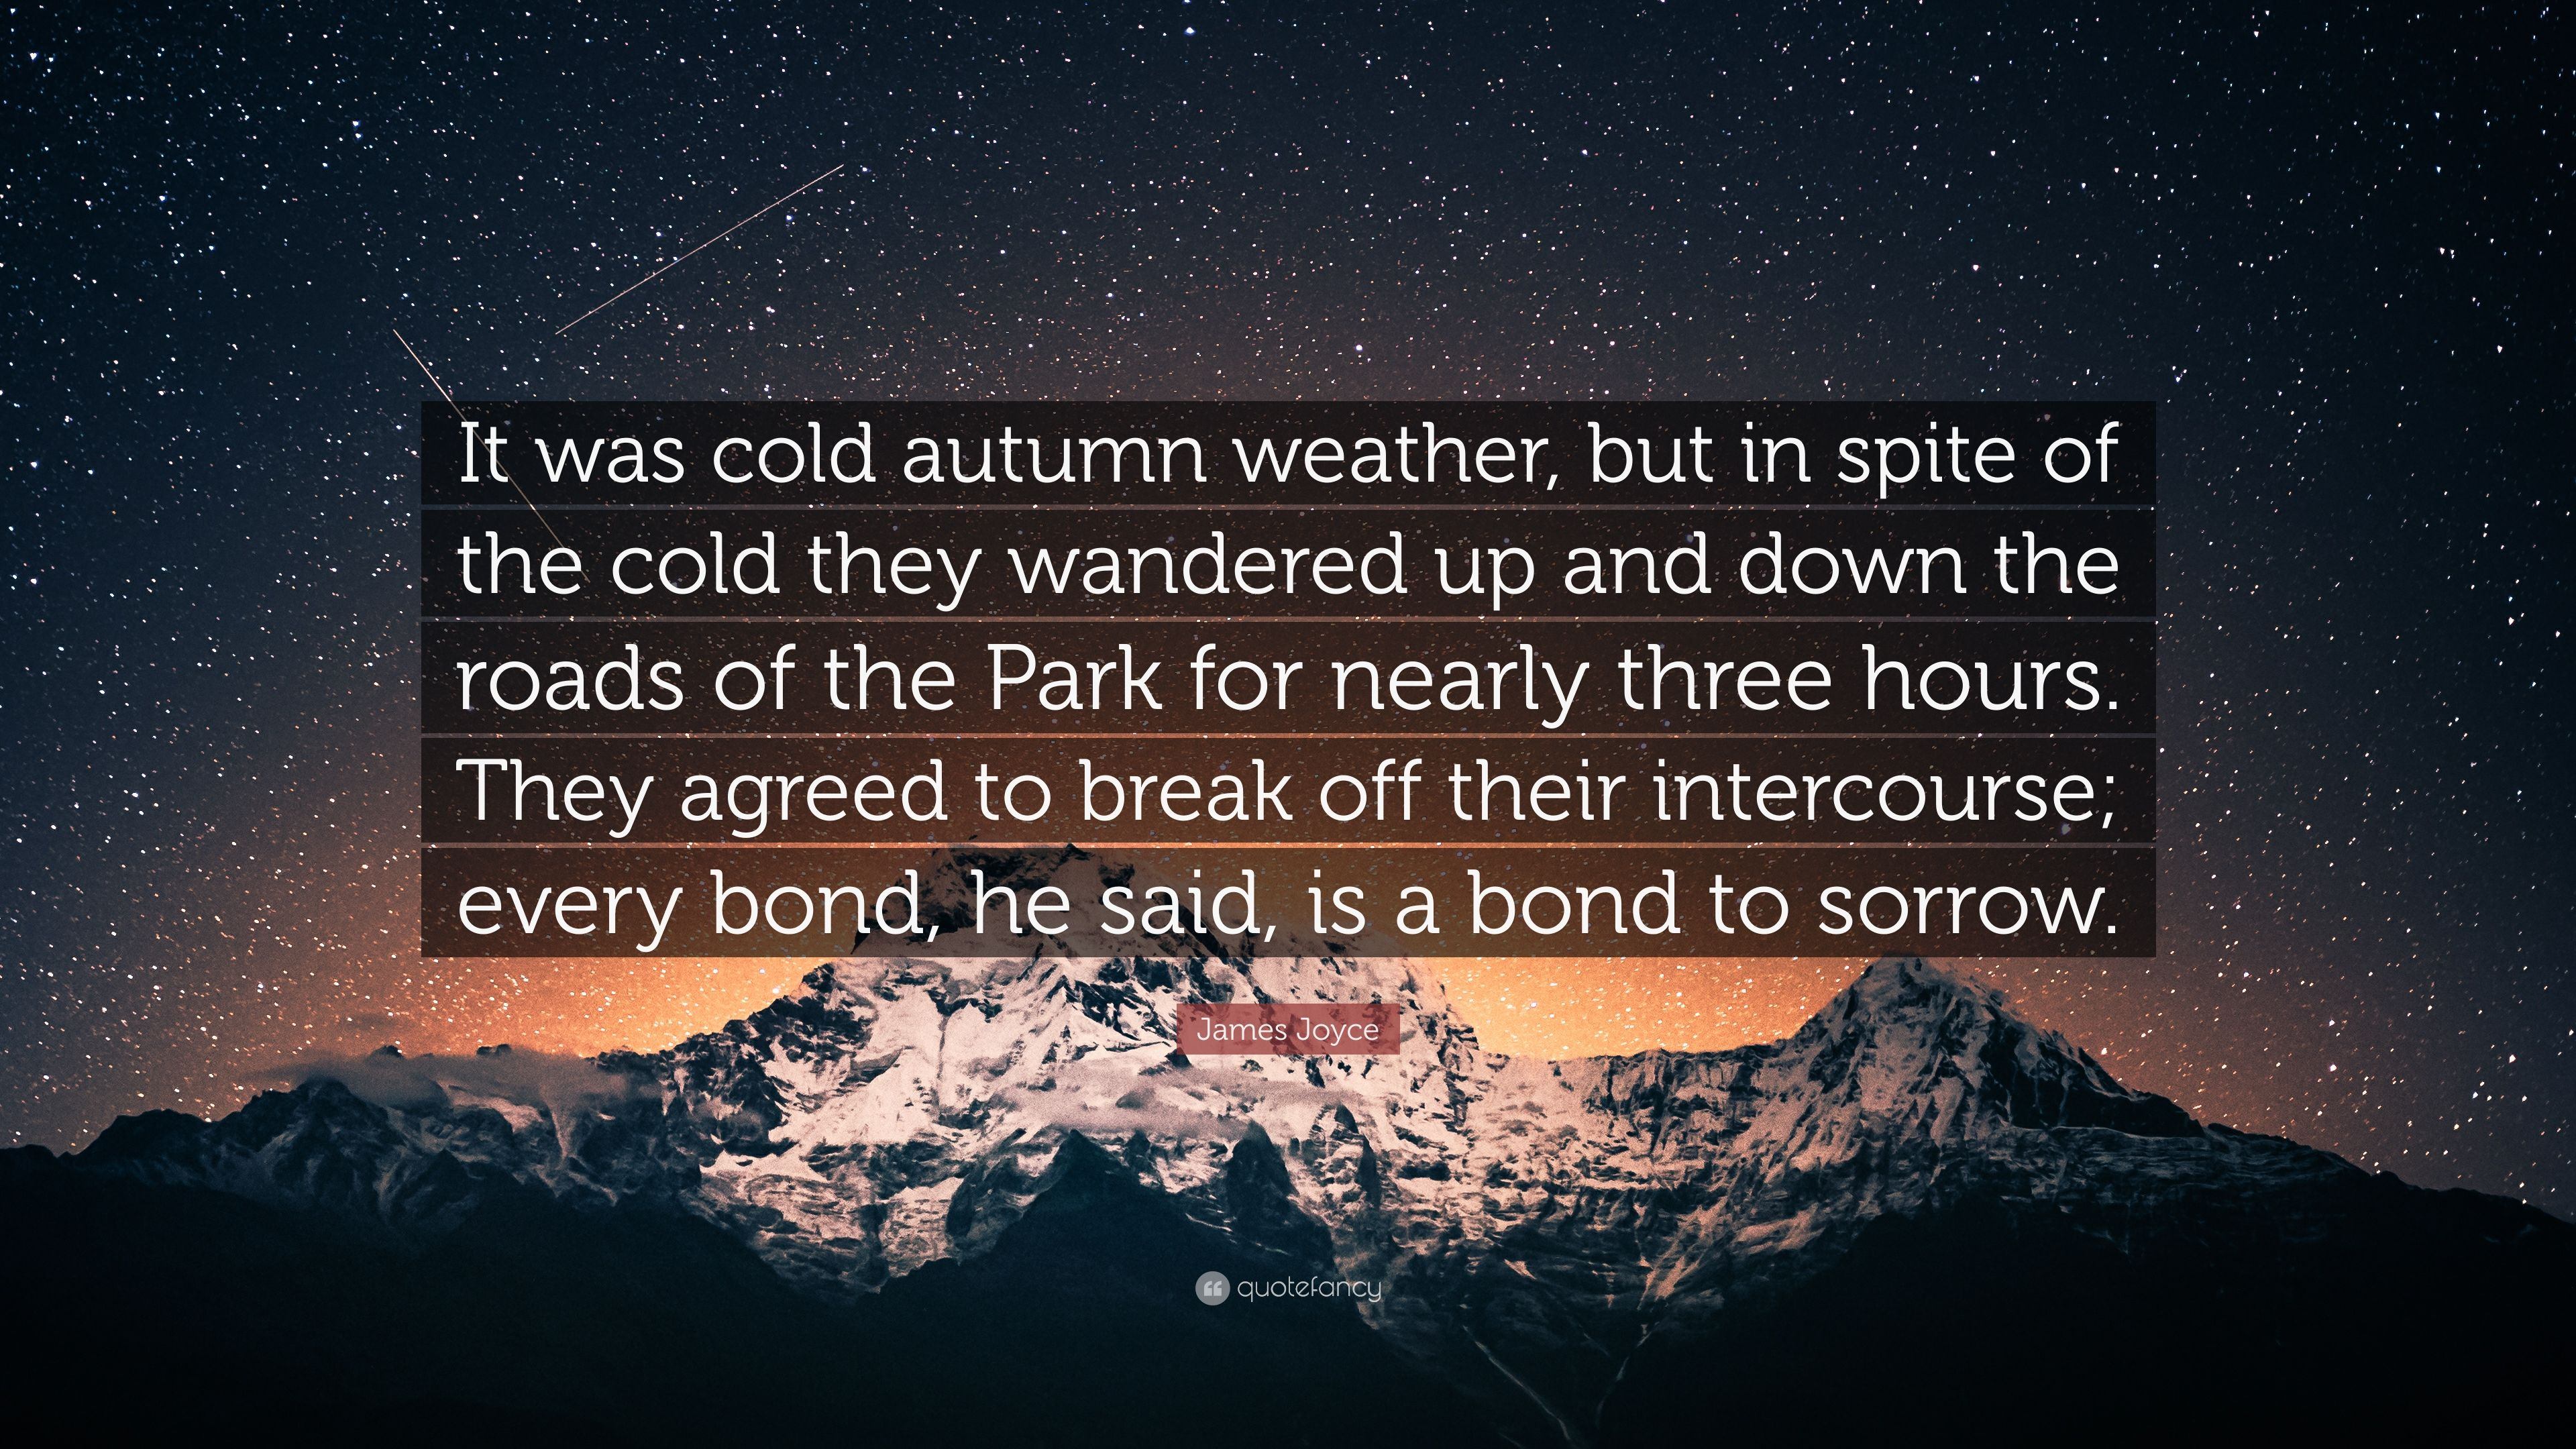 Genial James Joyce Quote: U201cIt Was Cold Autumn Weather, But In Spite Of The